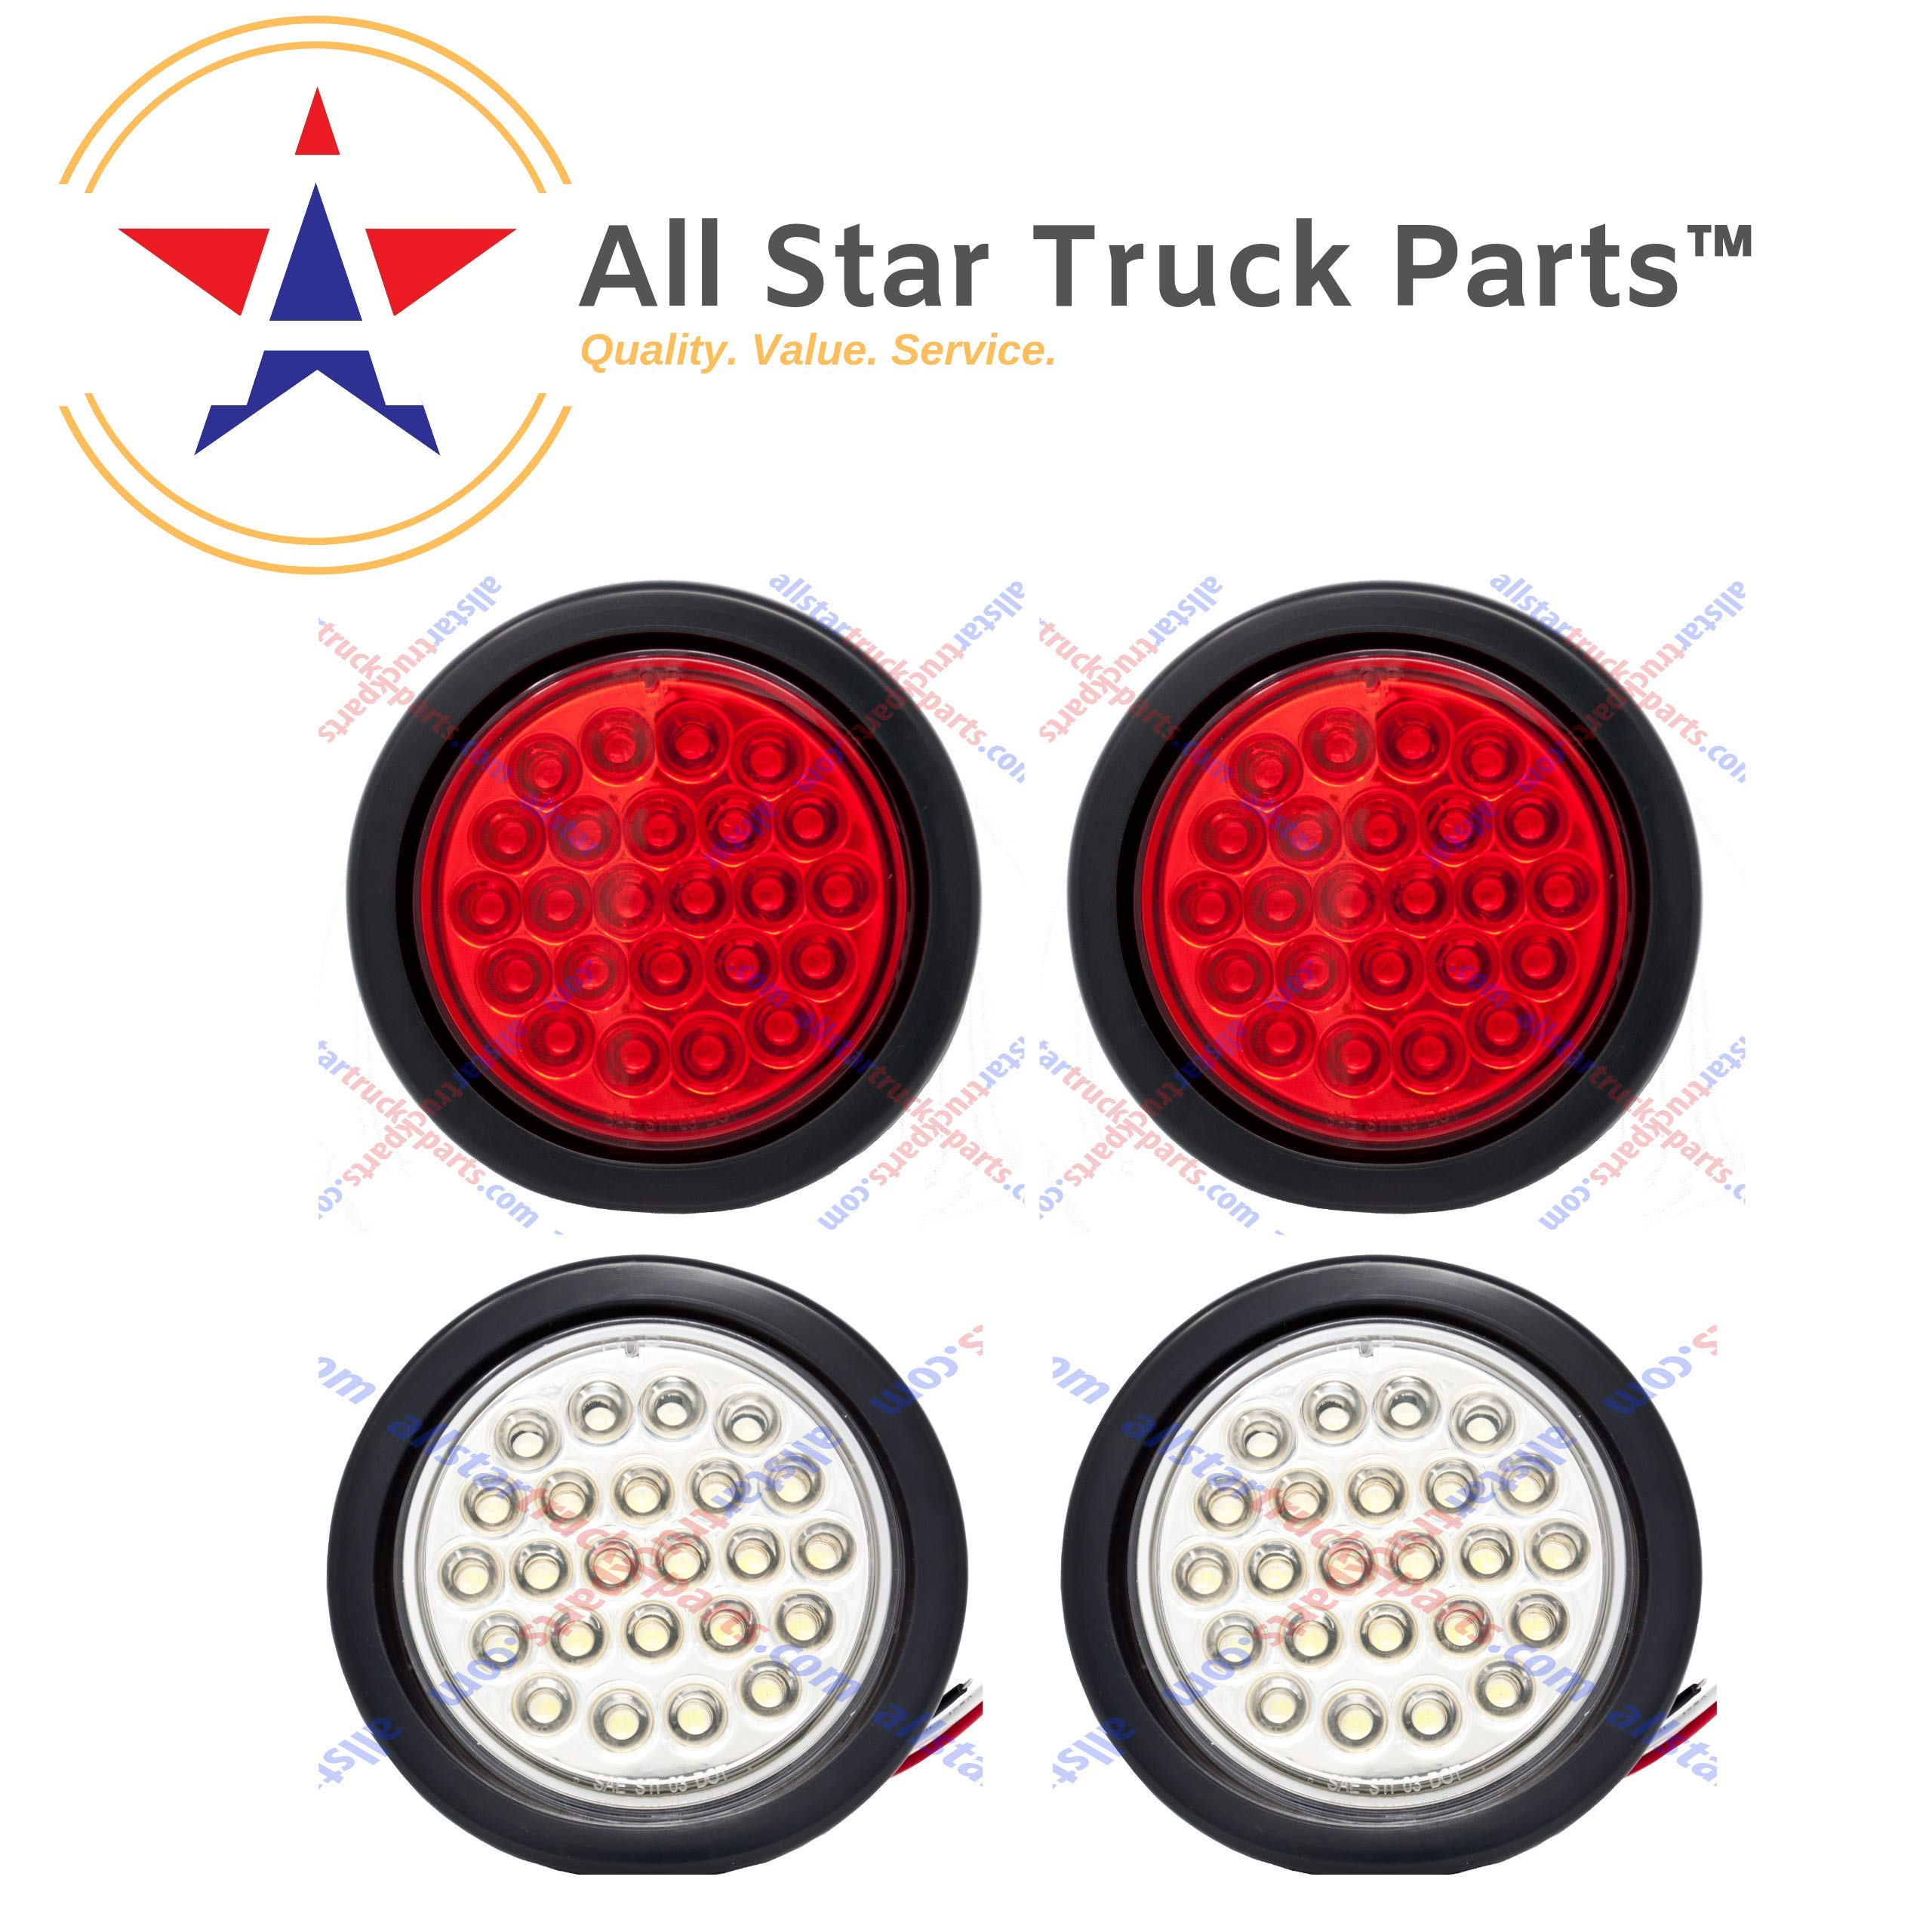 [ALL STAR TRUCK PARTS] 4'' Inch White and Red 24 LED Round Stop/Turn/Tail/Reverse/Backup Trailer Light Kit with 3 wire Pigtail Plug & Grommet- Qty 2 Red + Qty 2 White